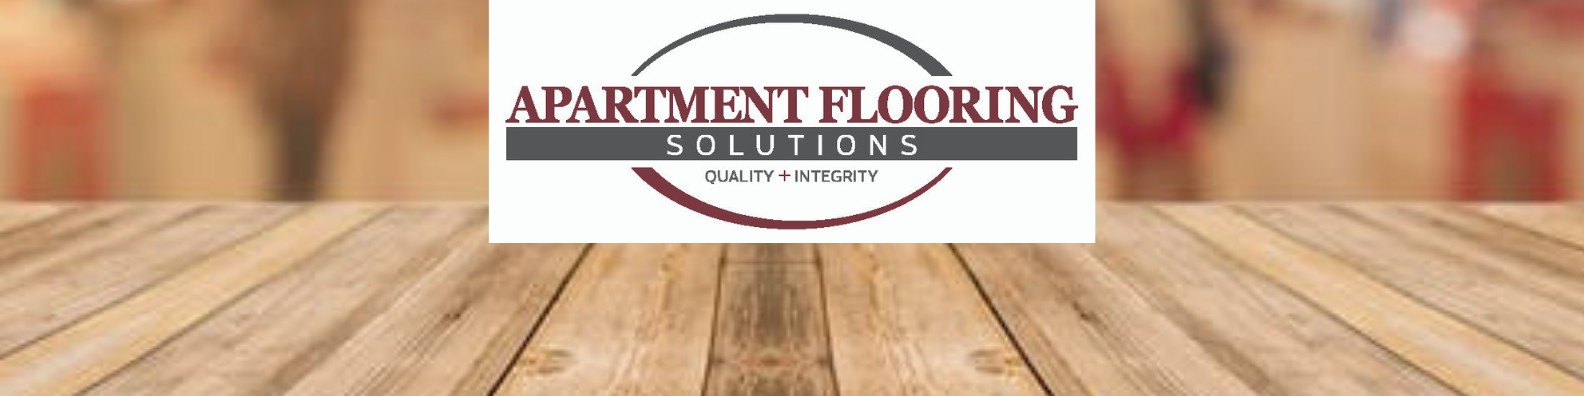 Apartment Flooring Solutions Llc Cover Image